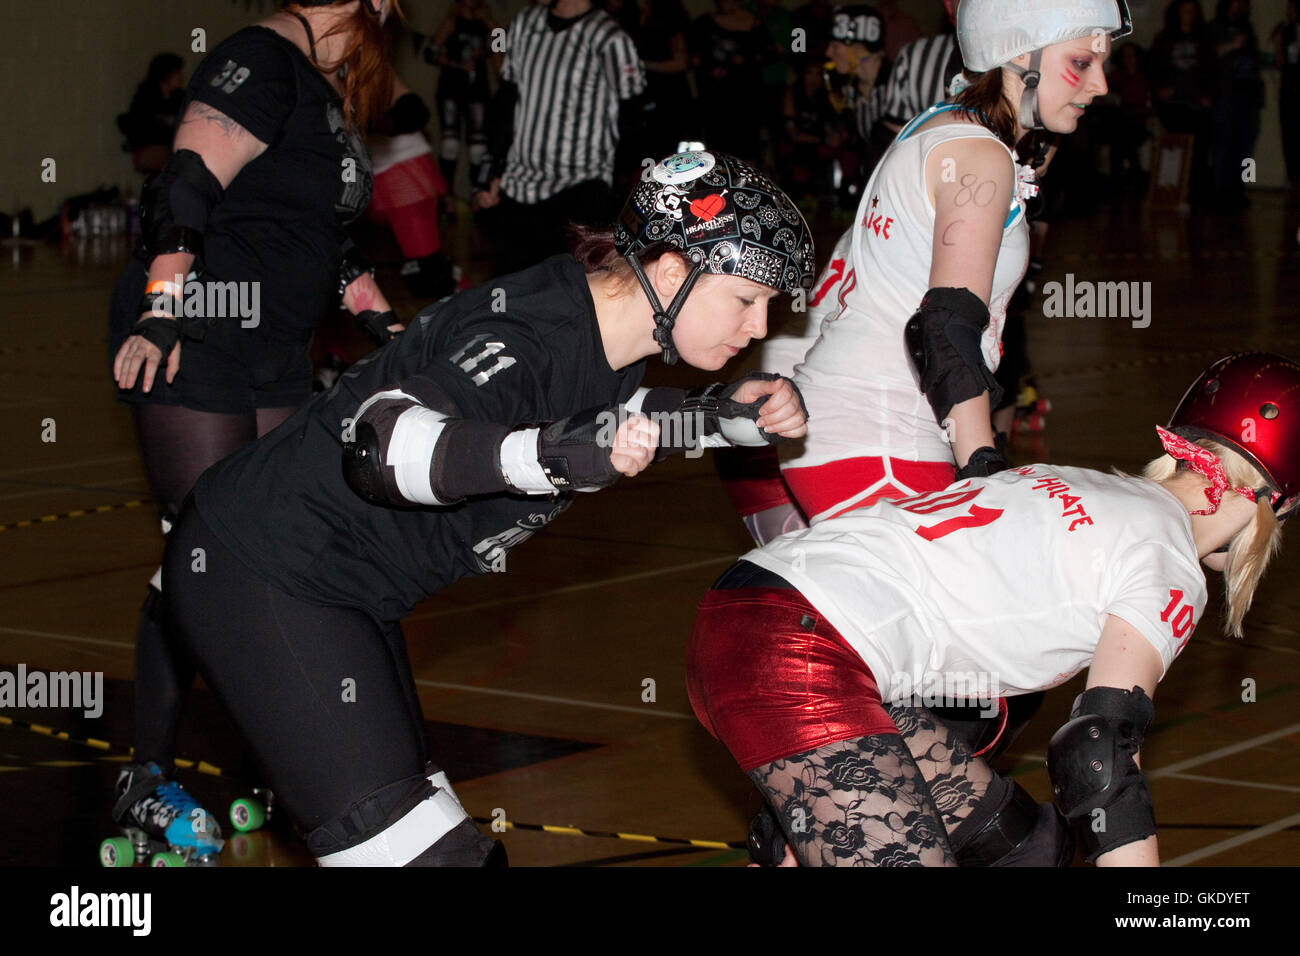 Woman roller derby skater in black avoids a booty block from an opponent - Stock Image